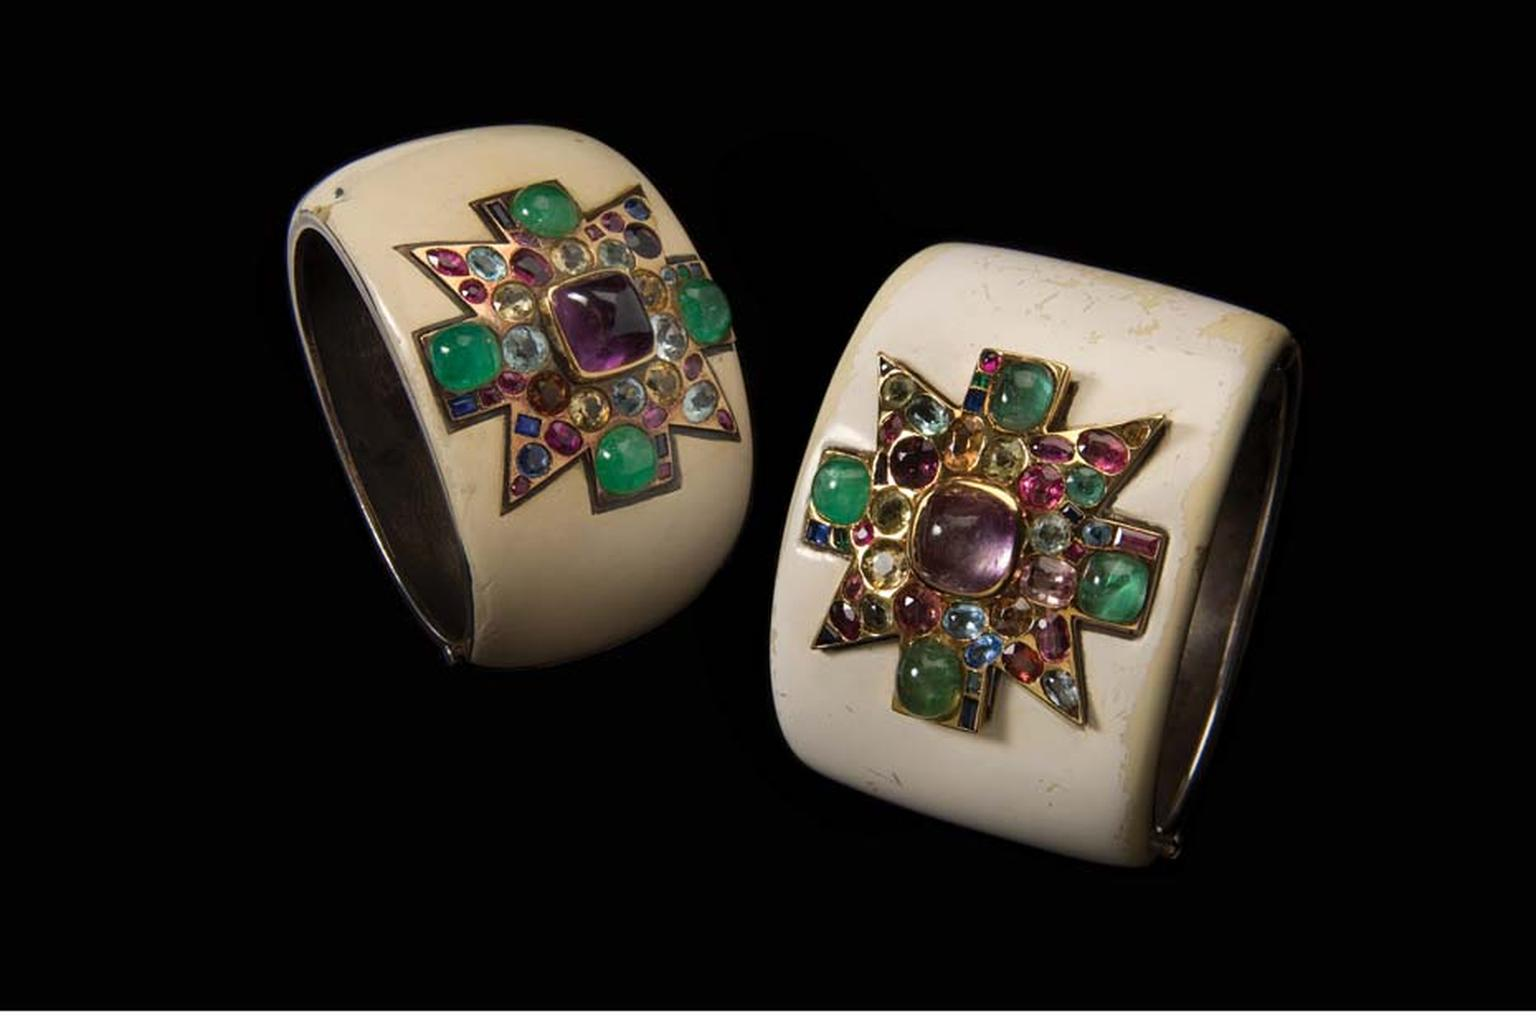 Verdura gemstone, gold and enamel Maltese Cross cuffs, circa 1930, originally owned by Coco Chanel.